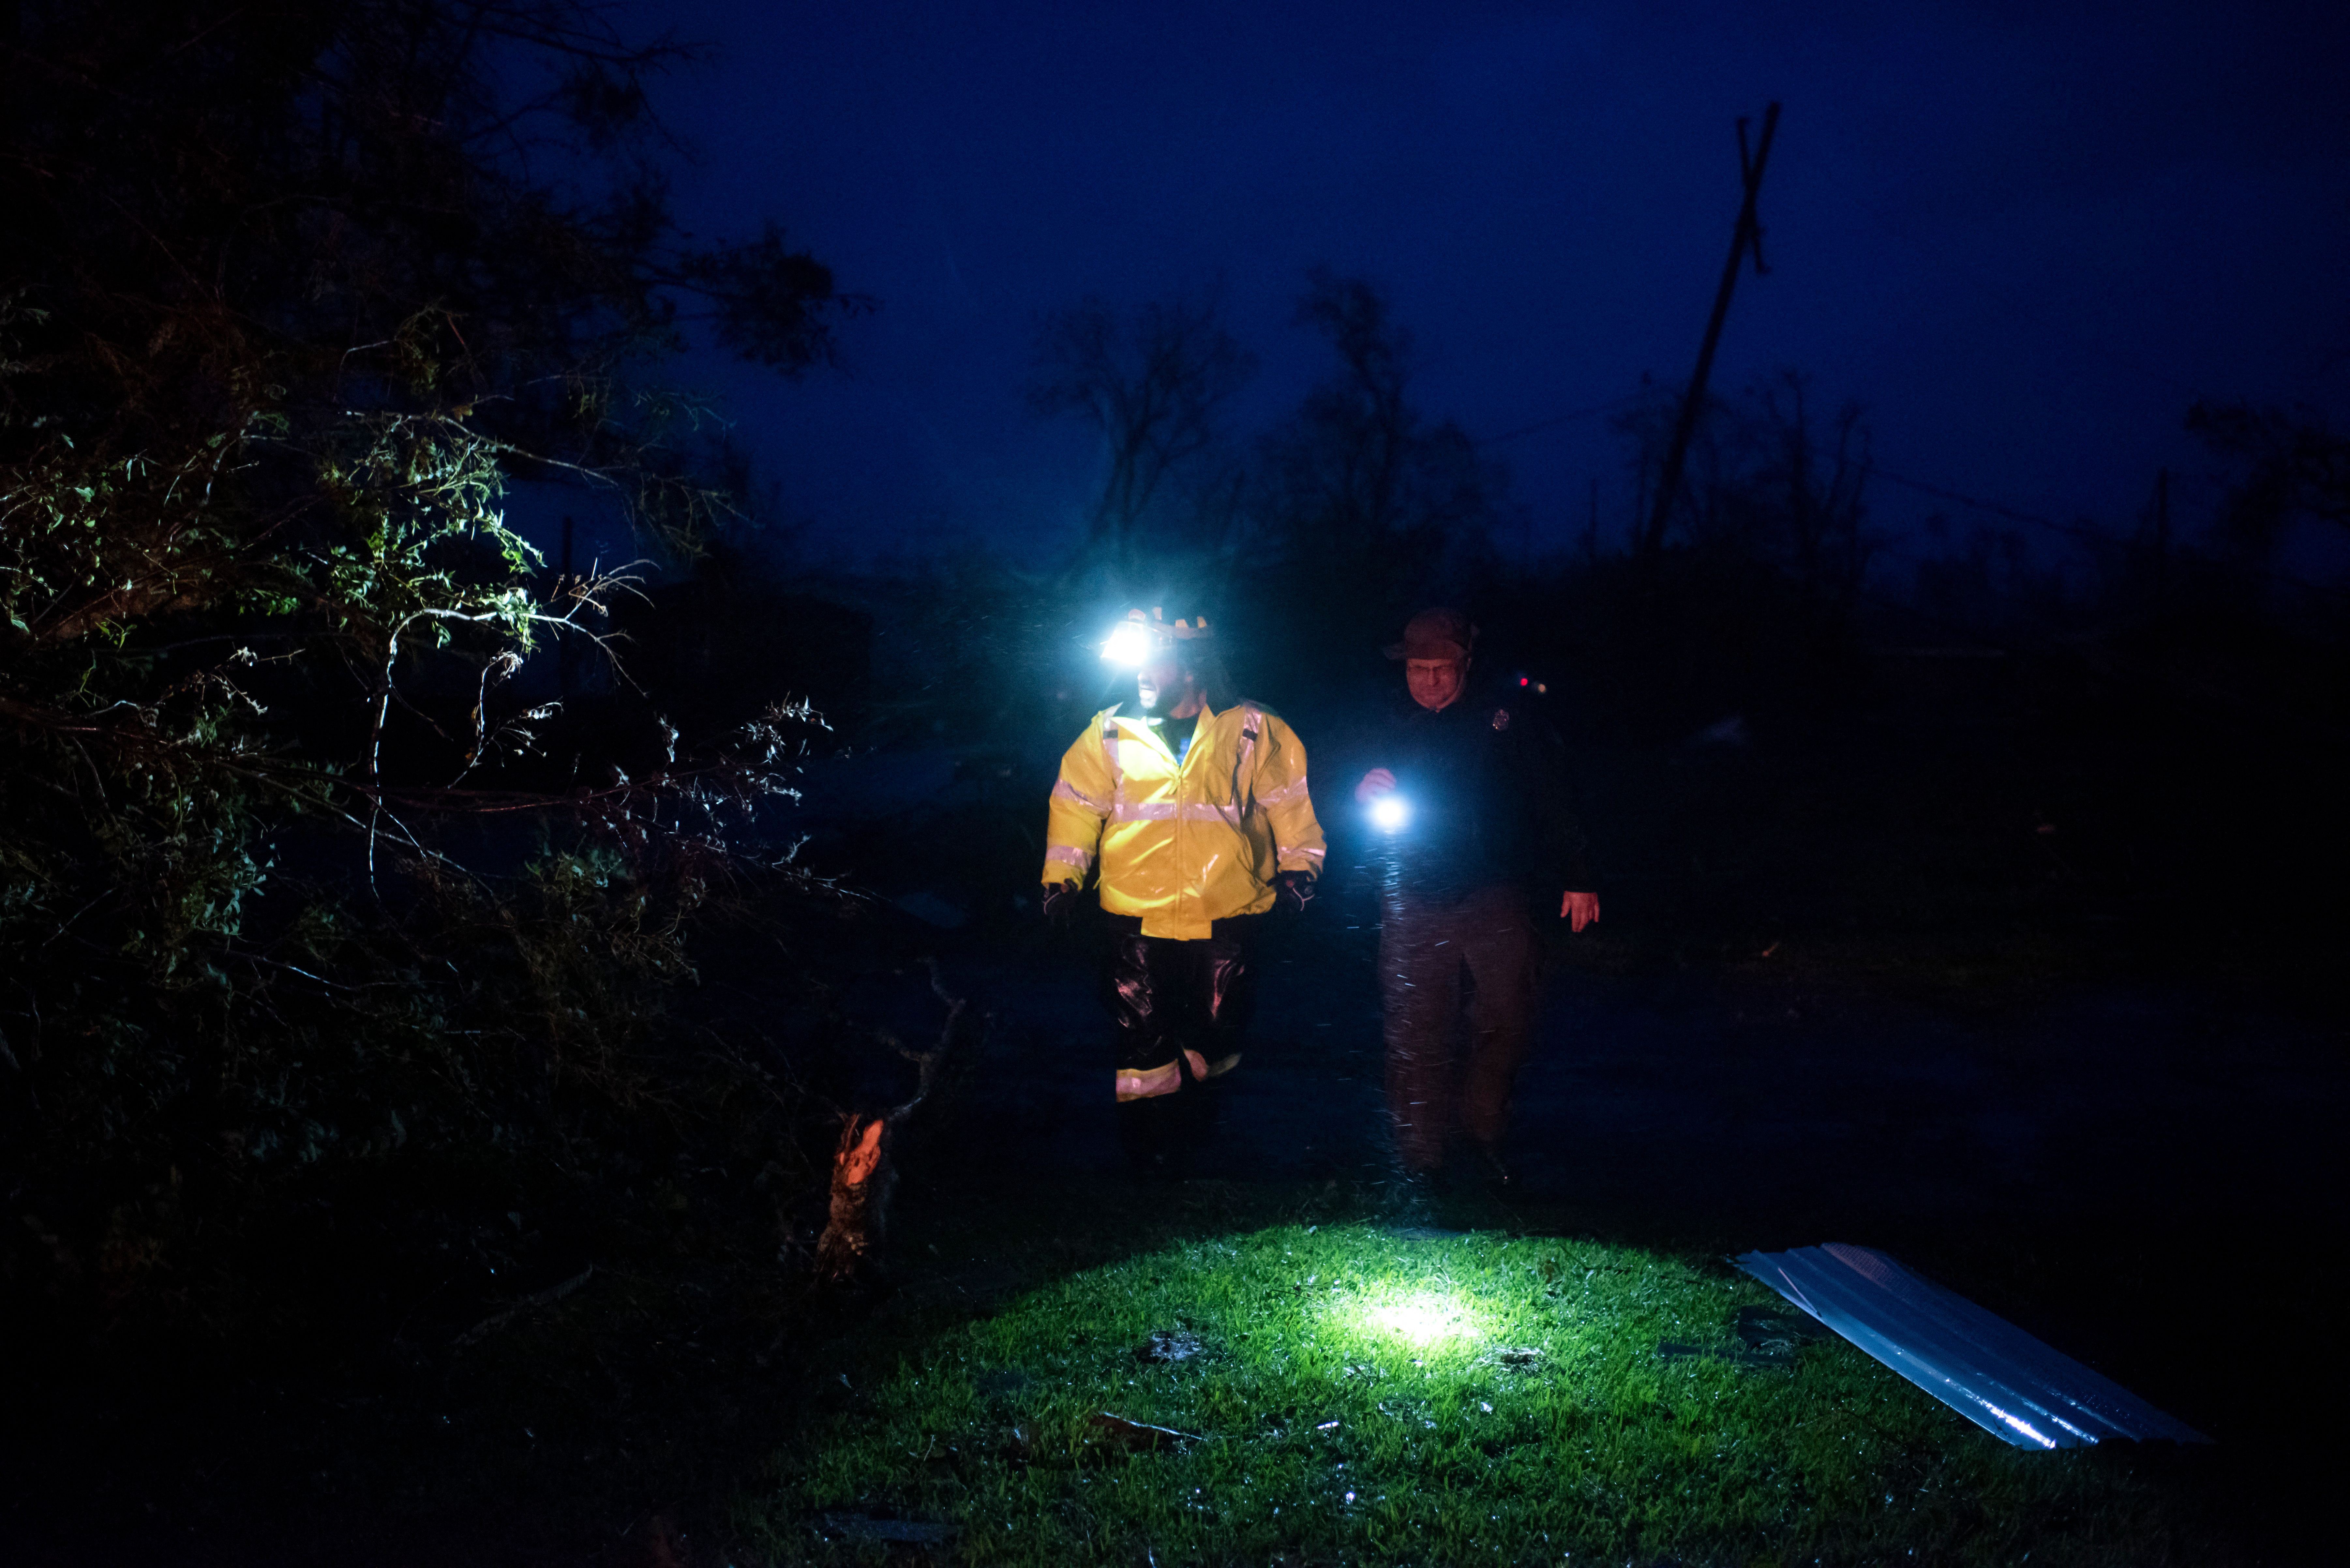 Montegut and Bourg firefighters inspect downed trees on a road in Bourg, Louisiana as Hurricane Ida passes on Aug. 29, 2021.